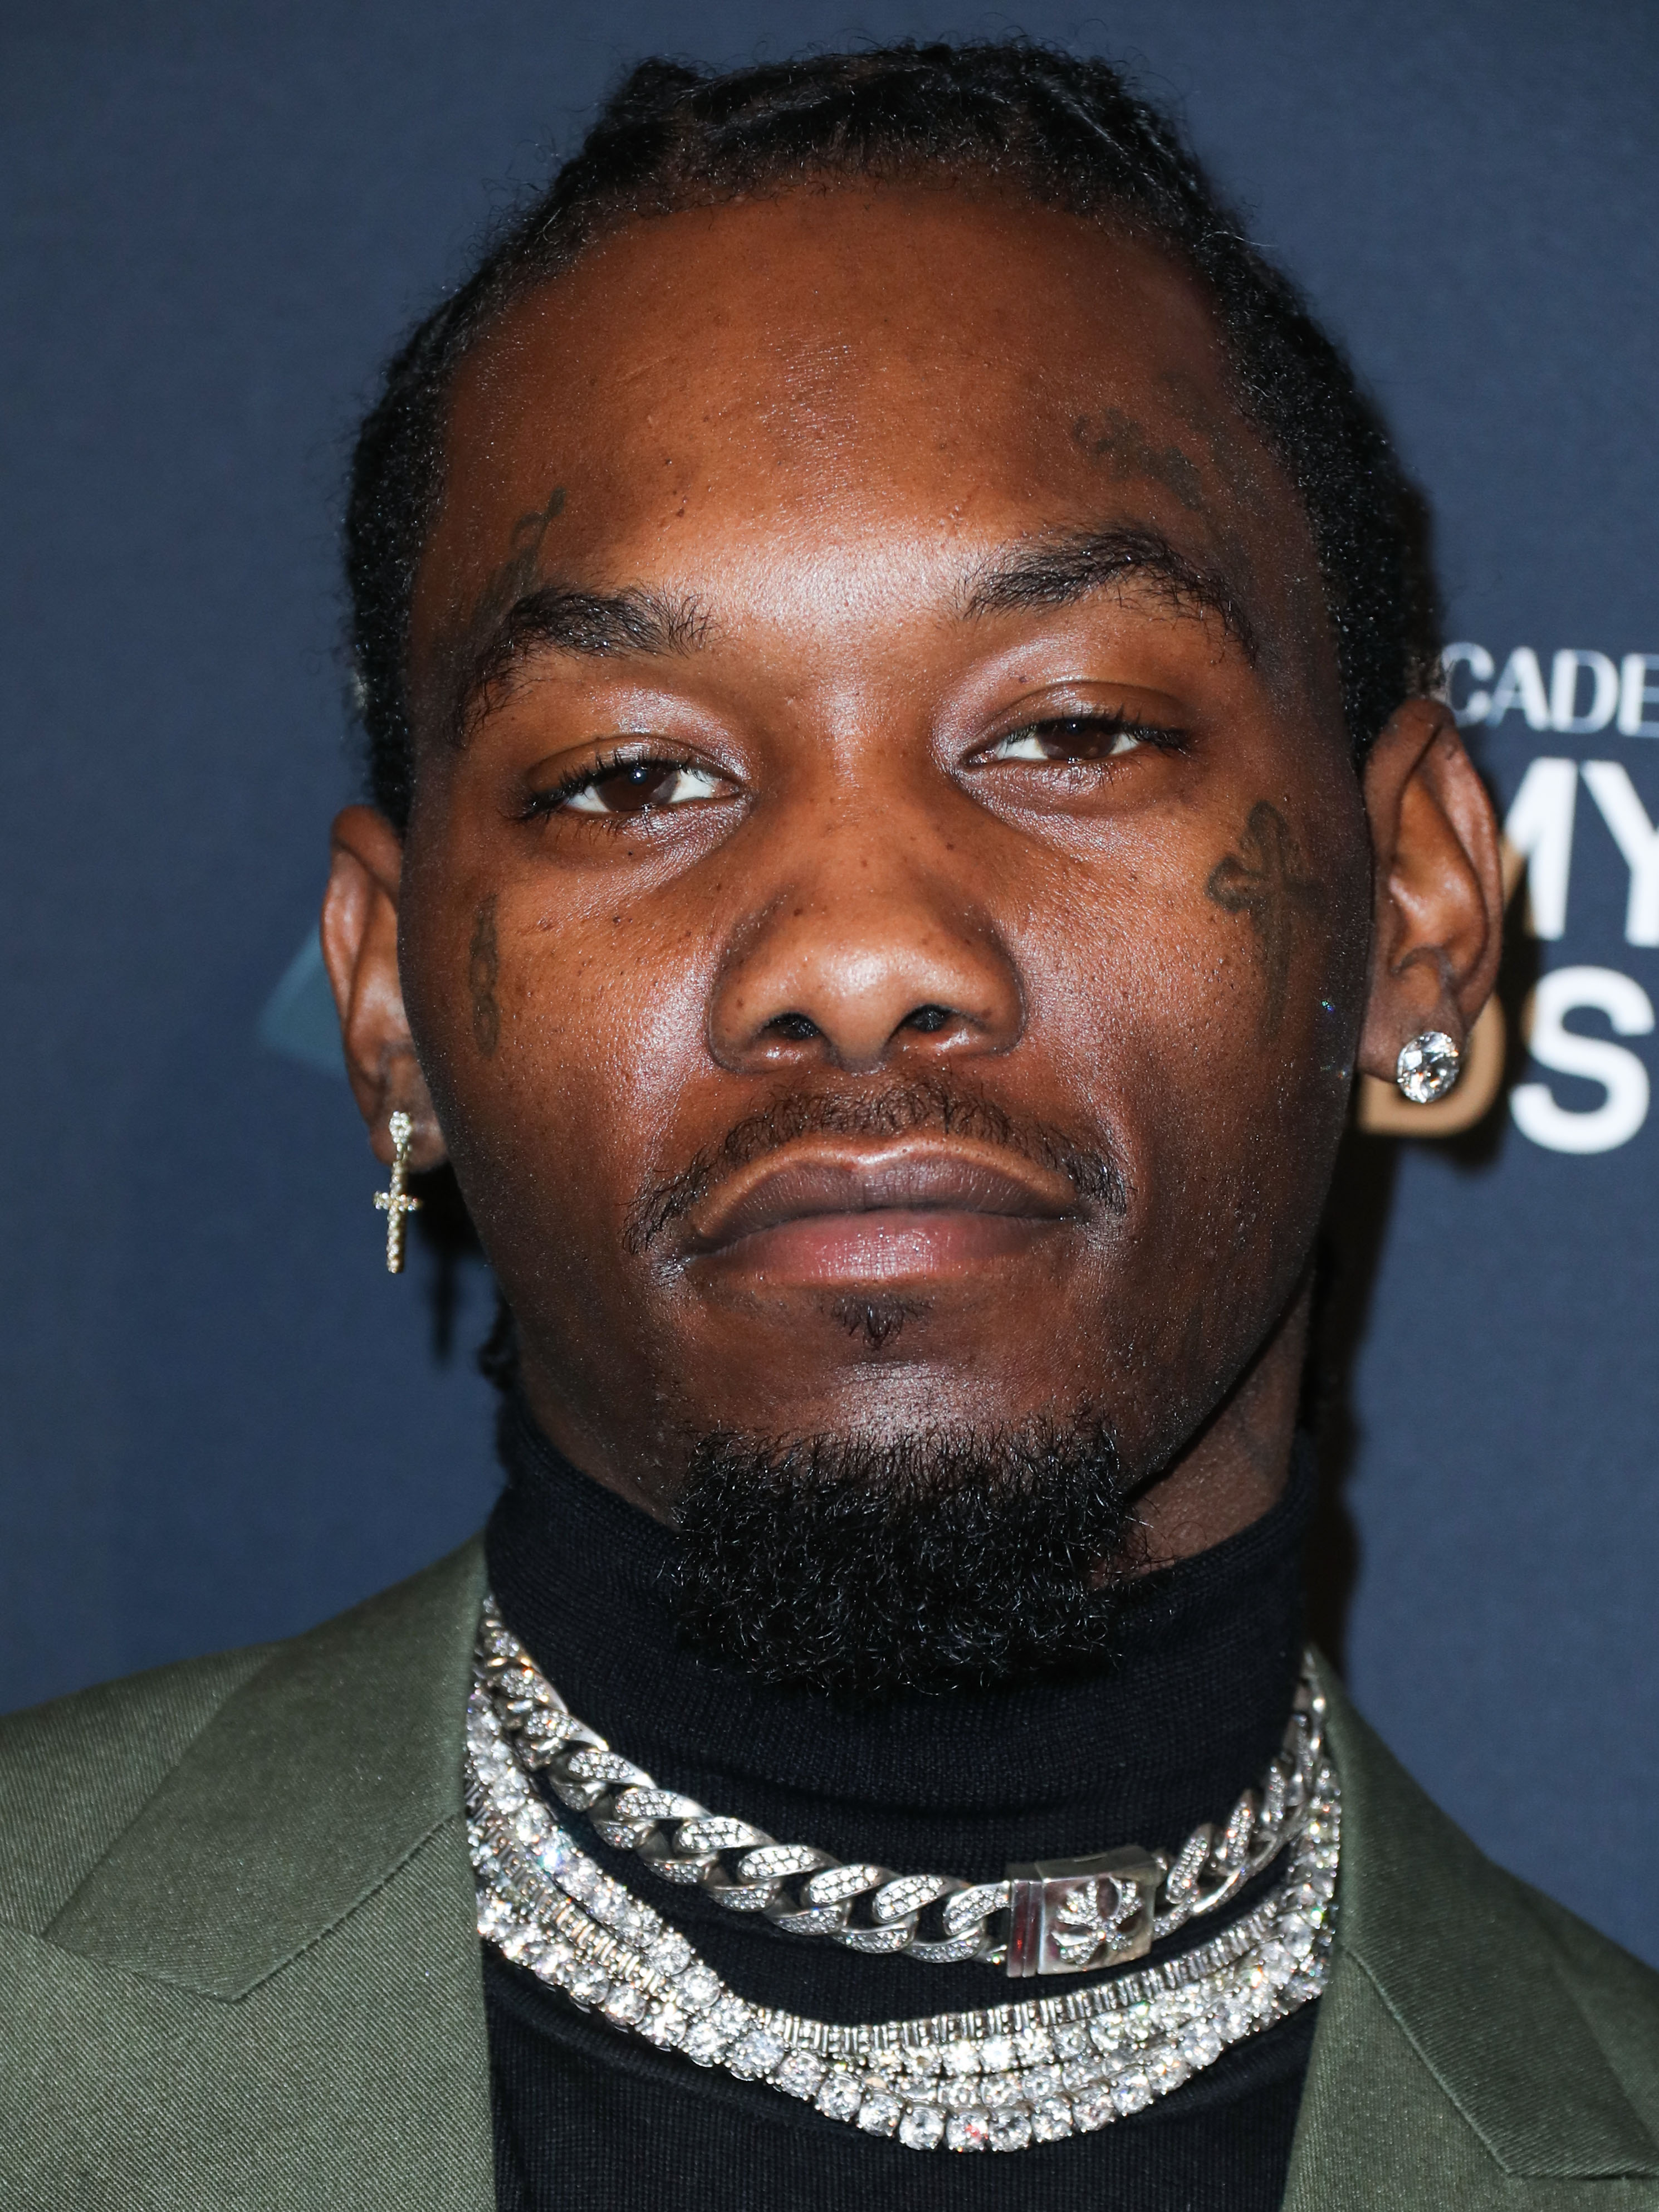 Offset arrives at The Recording Academy And Clive Davis' 2020 Pre-GRAMMY Gala held at The Beverly Hilton Hotel on January 25, 2020 in Beverly Hills, Los Angeles, California, United States.